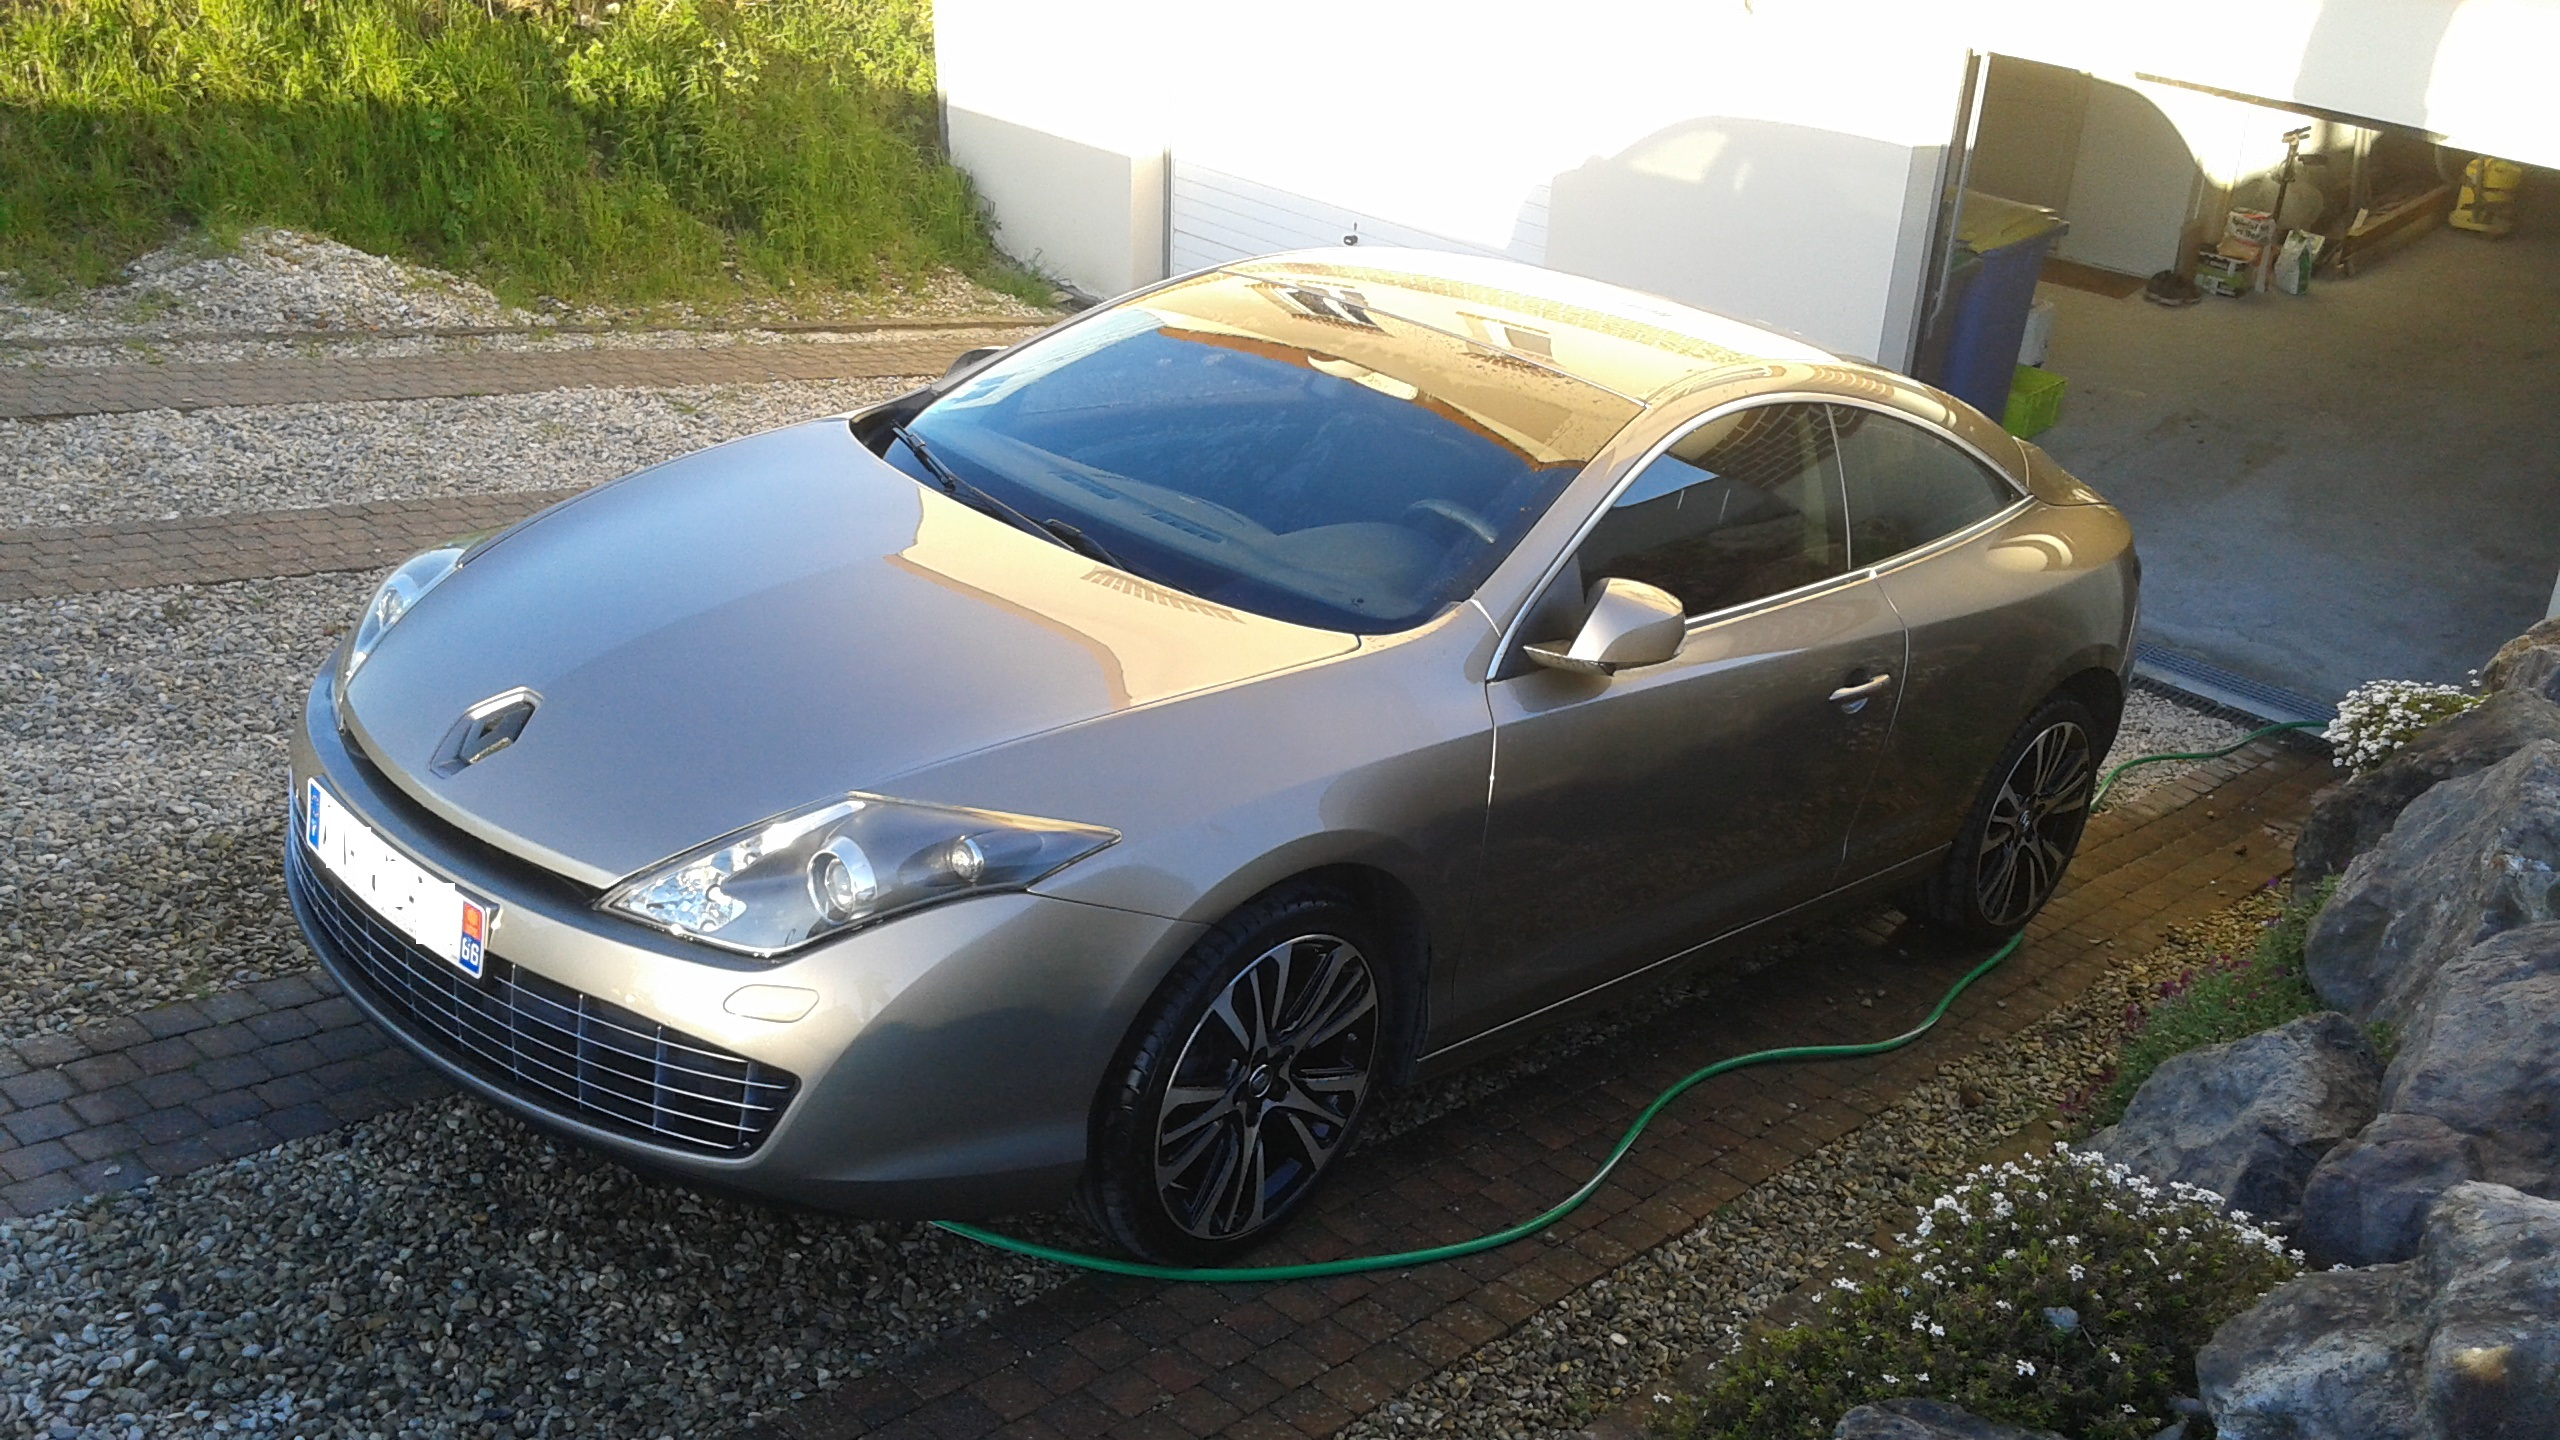 [nathanjo] Laguna III coupé initiale 3.0 dCi 235 - Page 5 20160417195135